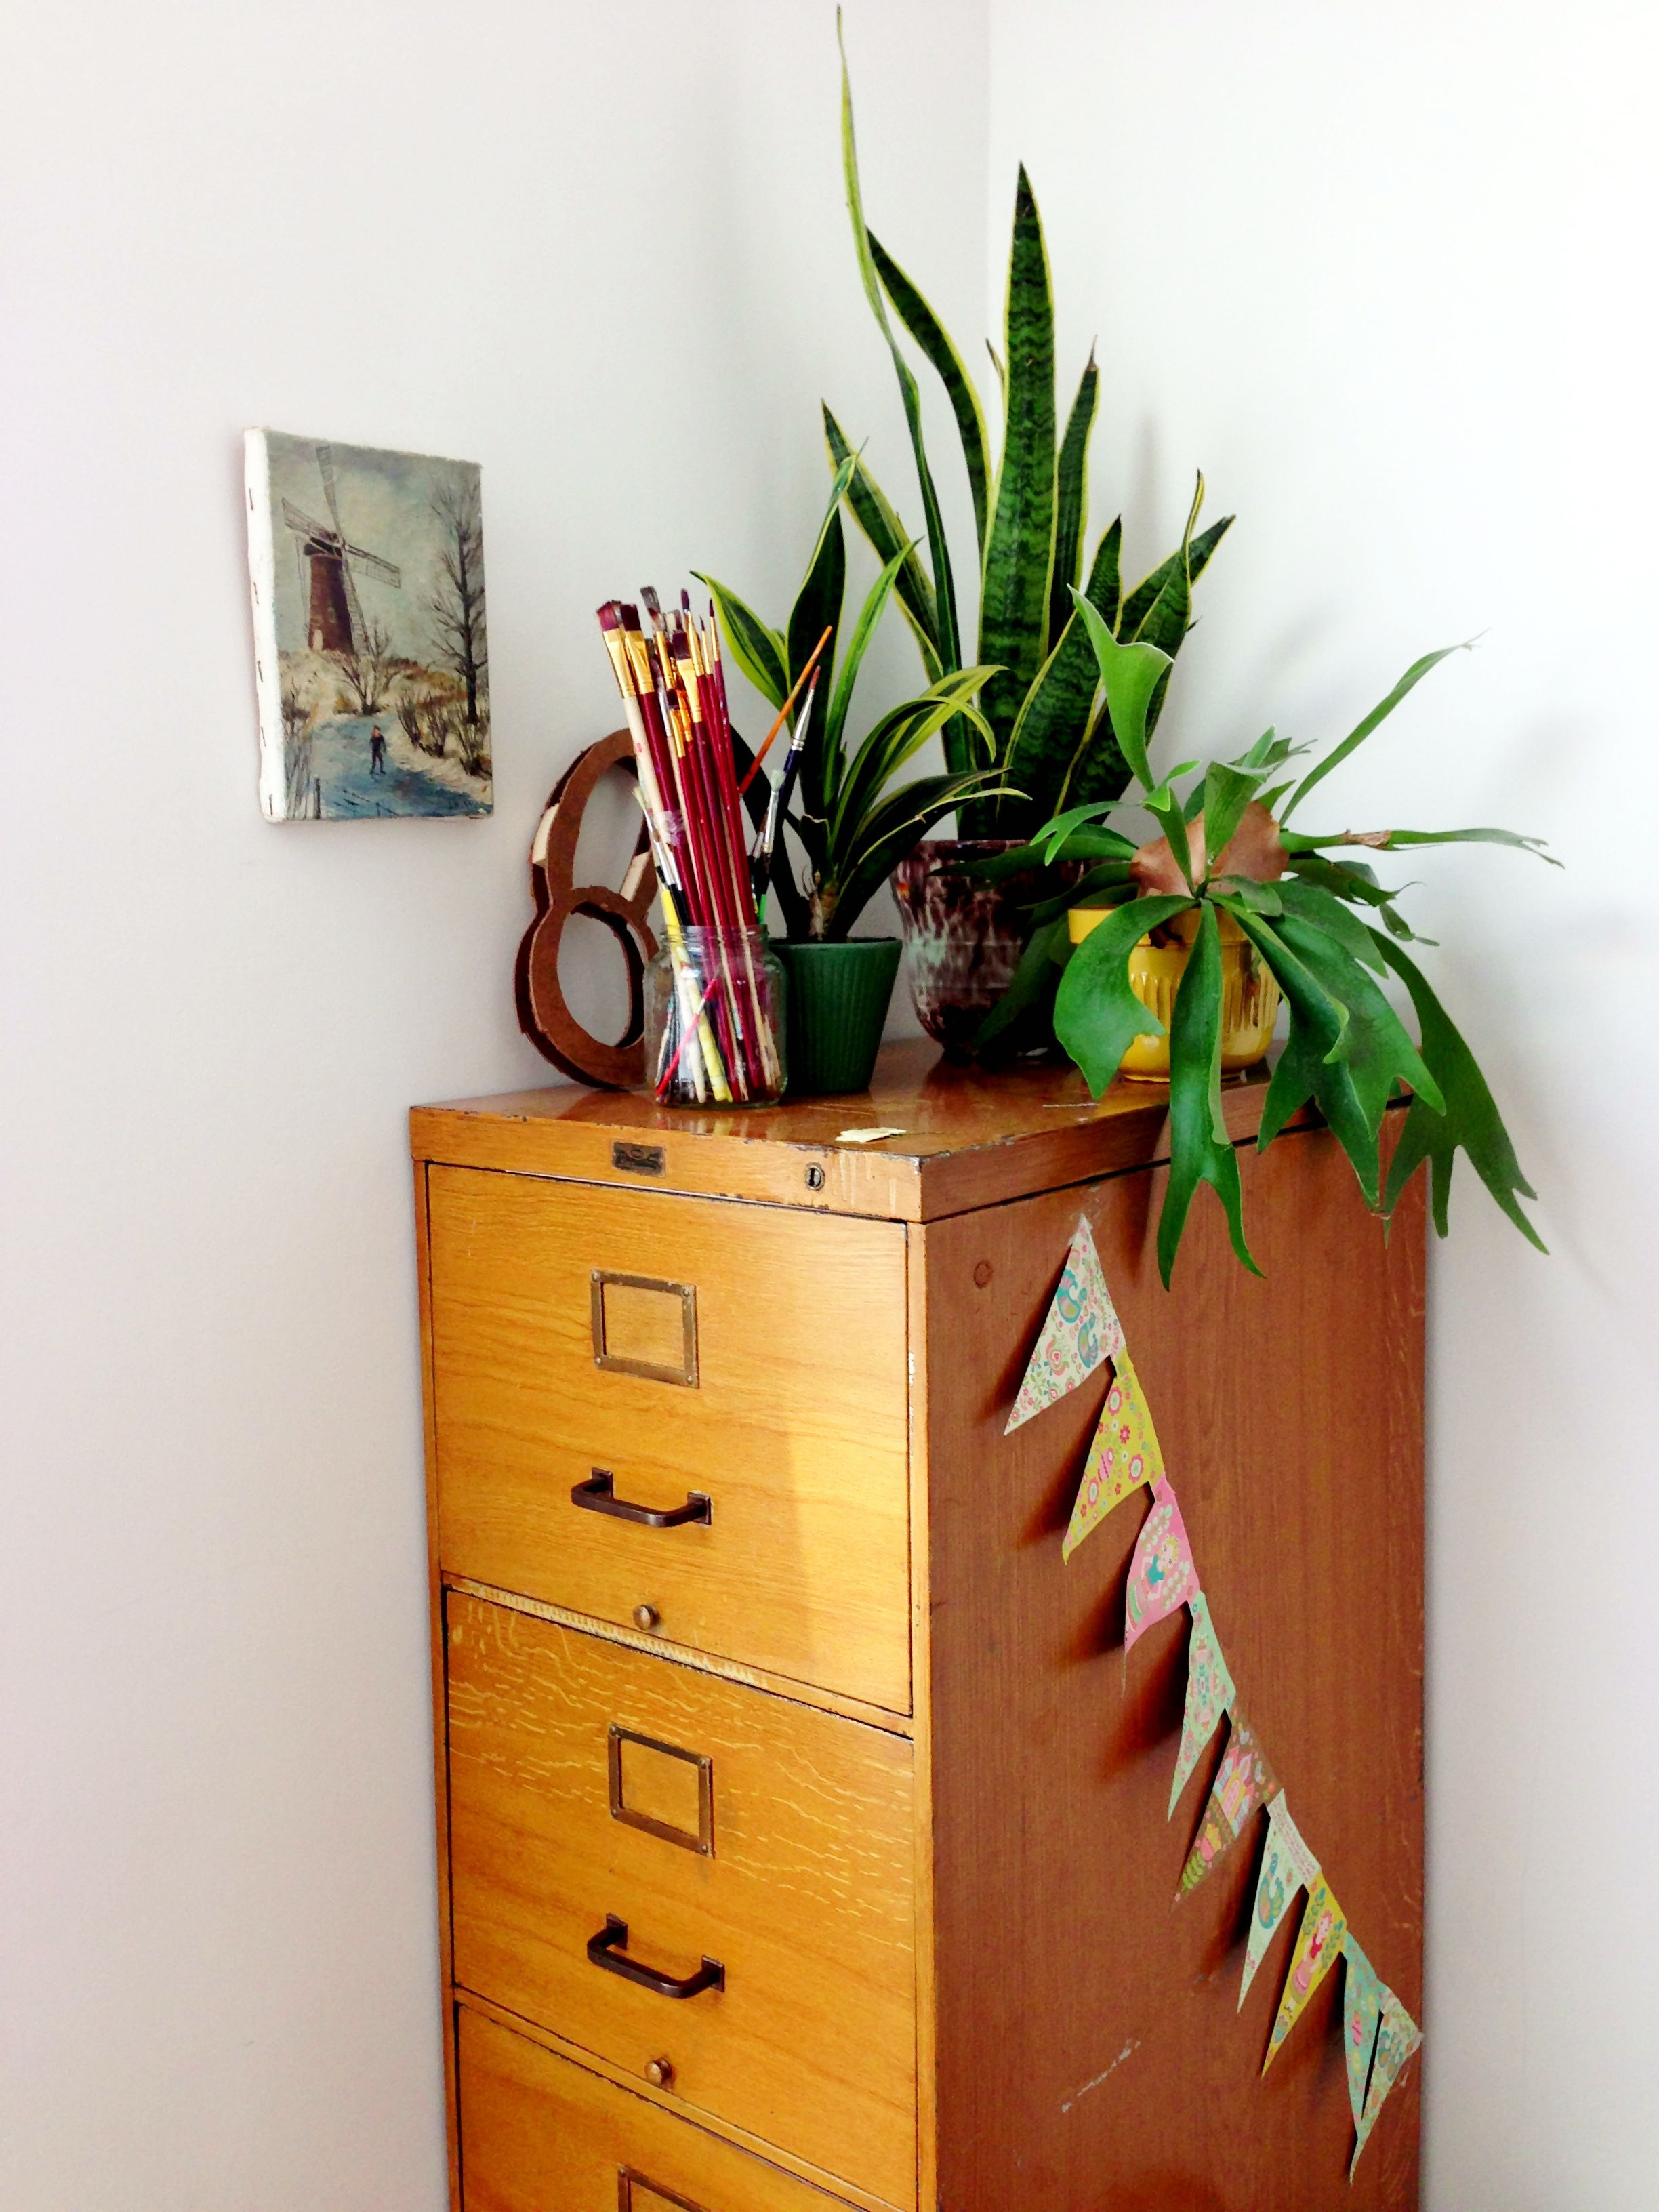 Vintage drawers with little secrets.